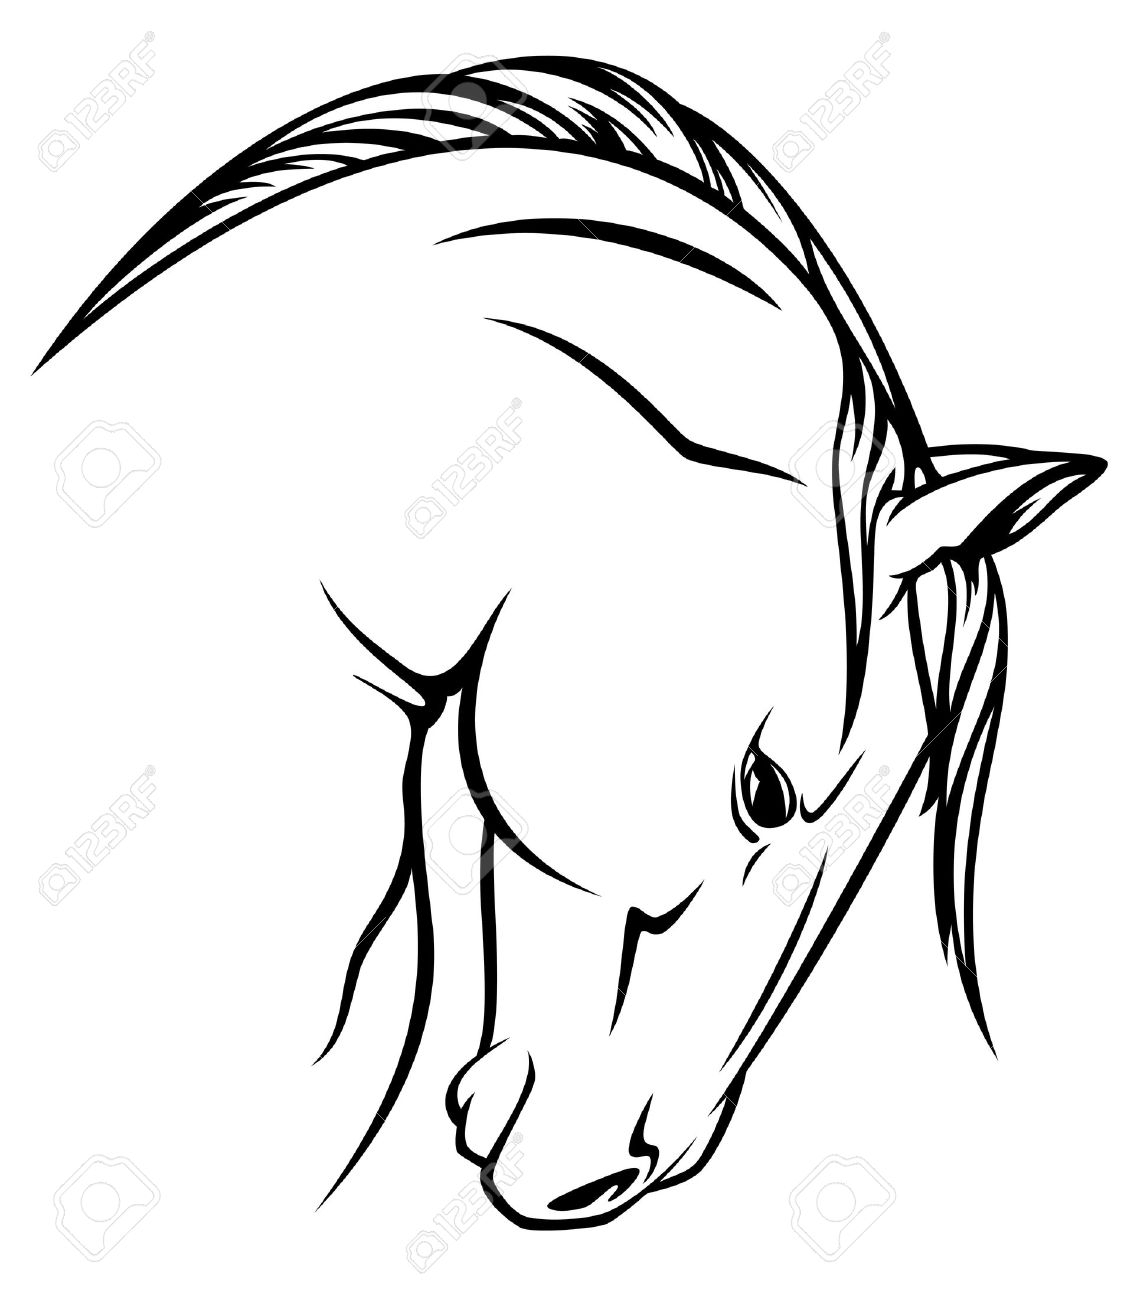 1124x1300 Outline Drawing Of A Horse Jumping Horse Outline Clip Art Free